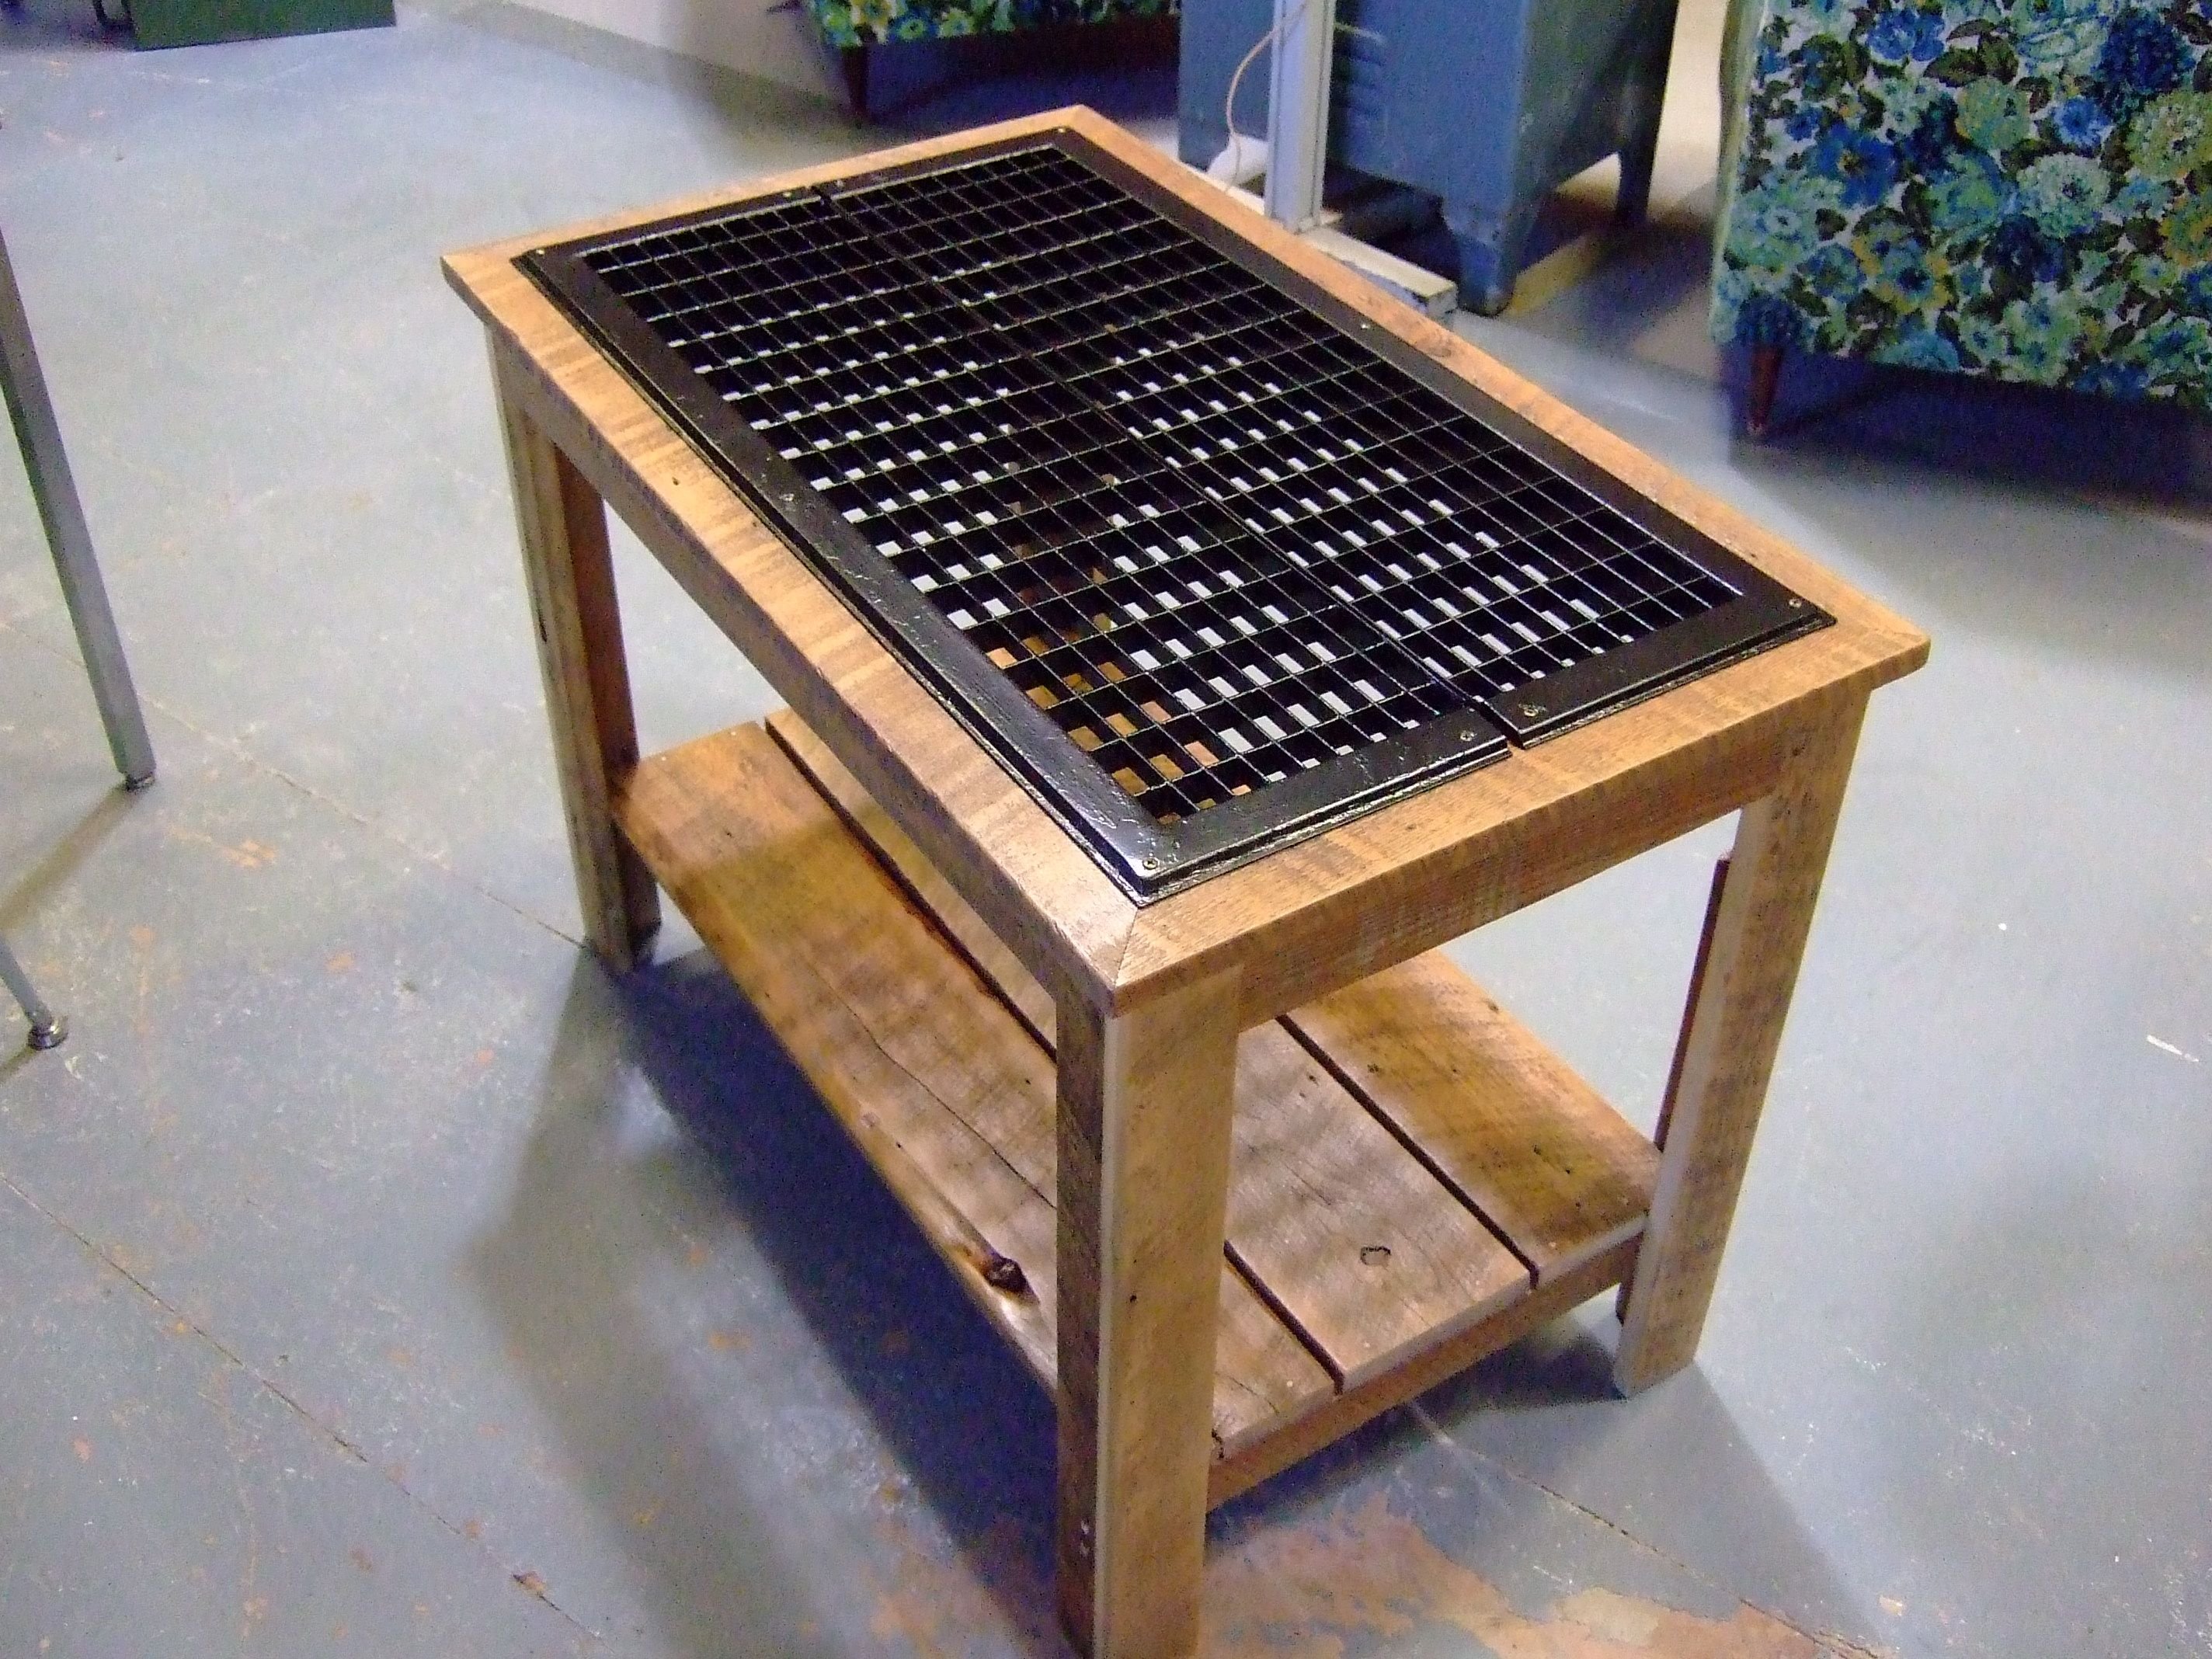 Grate table made from reclaimed steel floor grates and 4 year